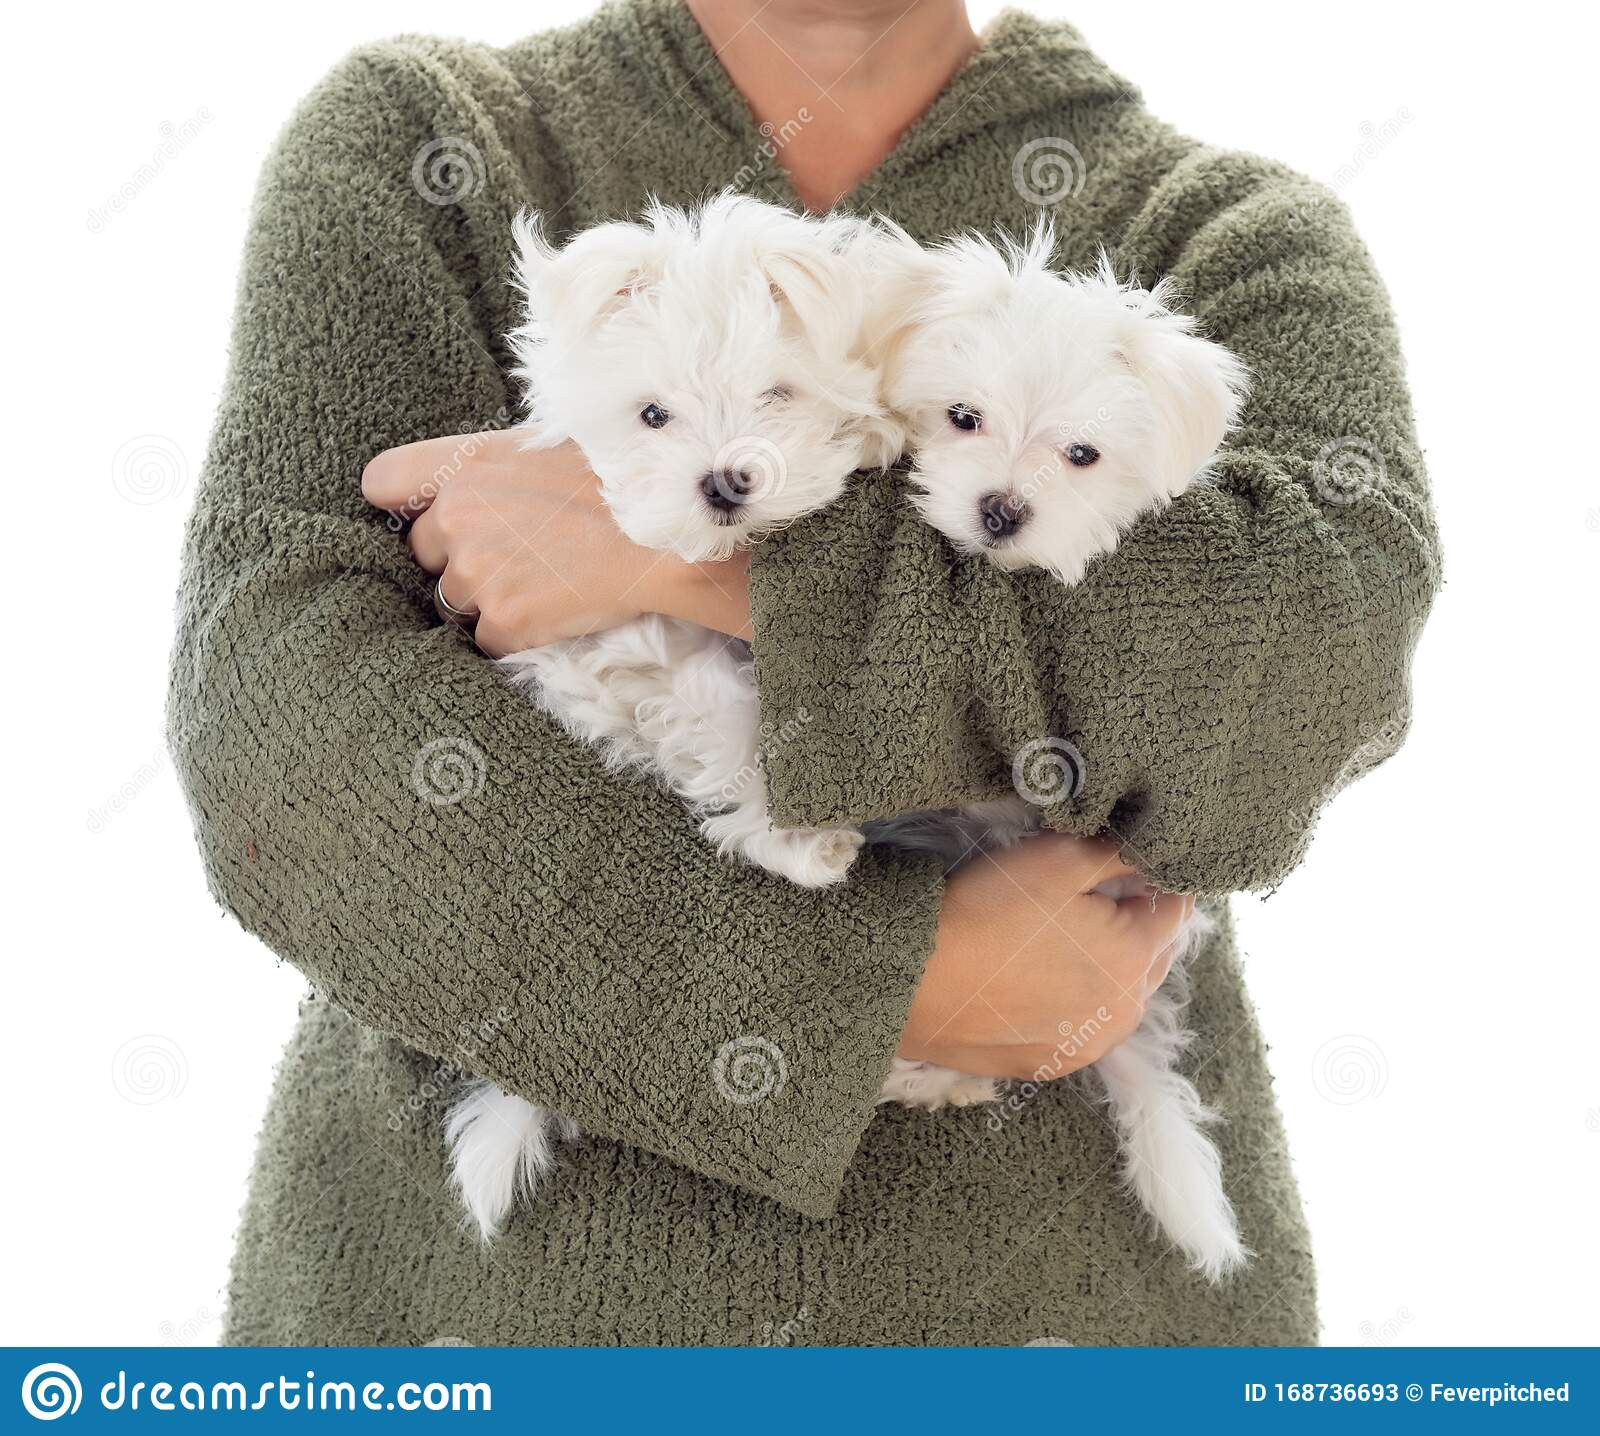 391 Maltese Puppies Photos Free Royalty Free Stock Photos From Dreamstime